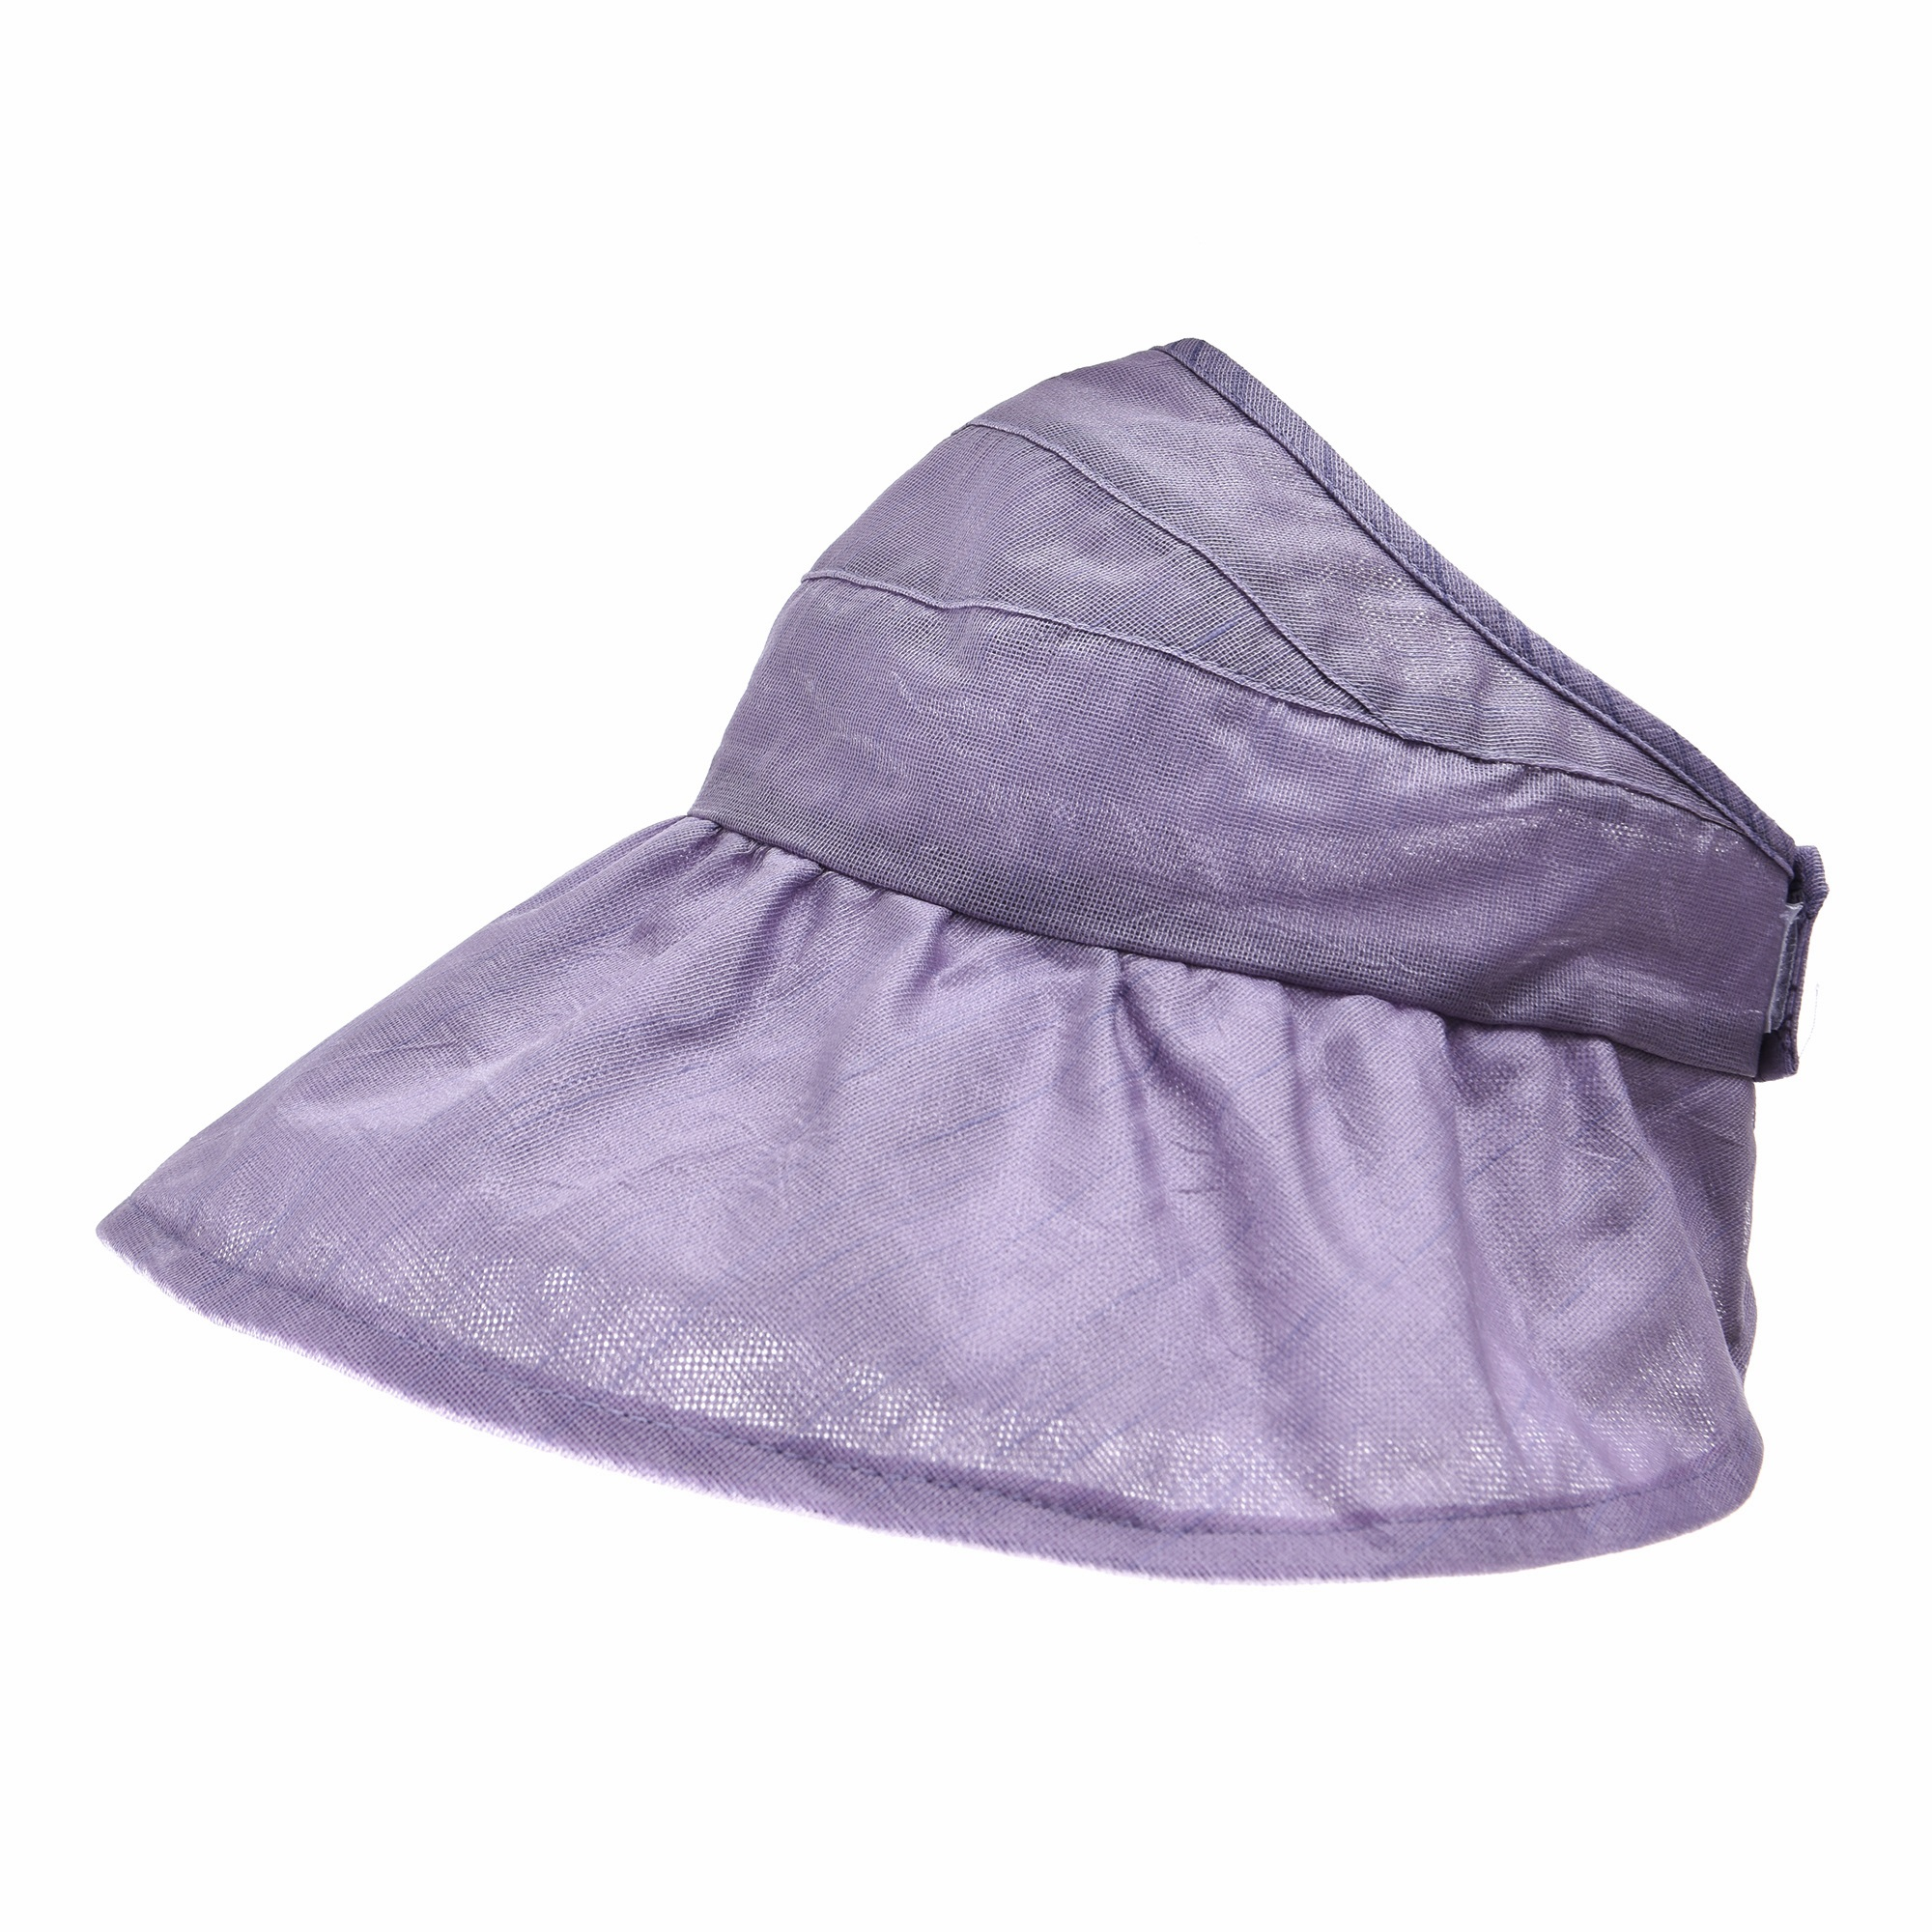 WITHMOONS Floral Ladies Sun Visor Hat with Floppy Wide Brim SL9710